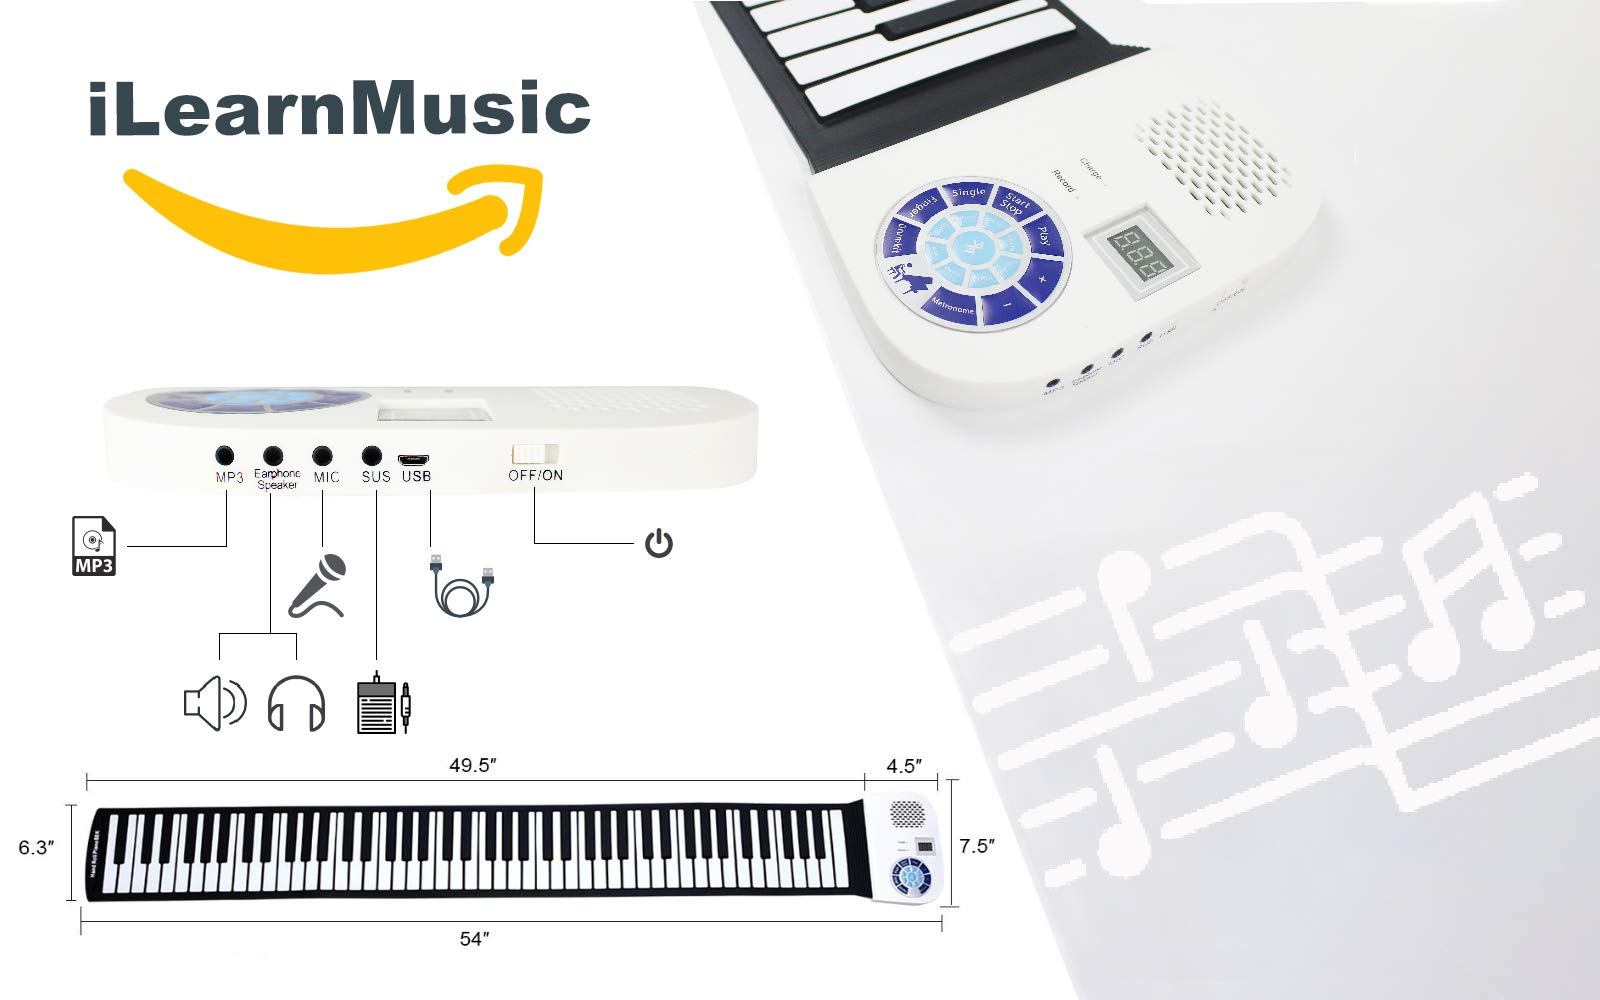 iLearnMusic Roll Up Piano, Premium Grade Silicone, Built-in Speakers - Educational Piano (61 Keys (F61)) by iLearnMusic (Image #3)